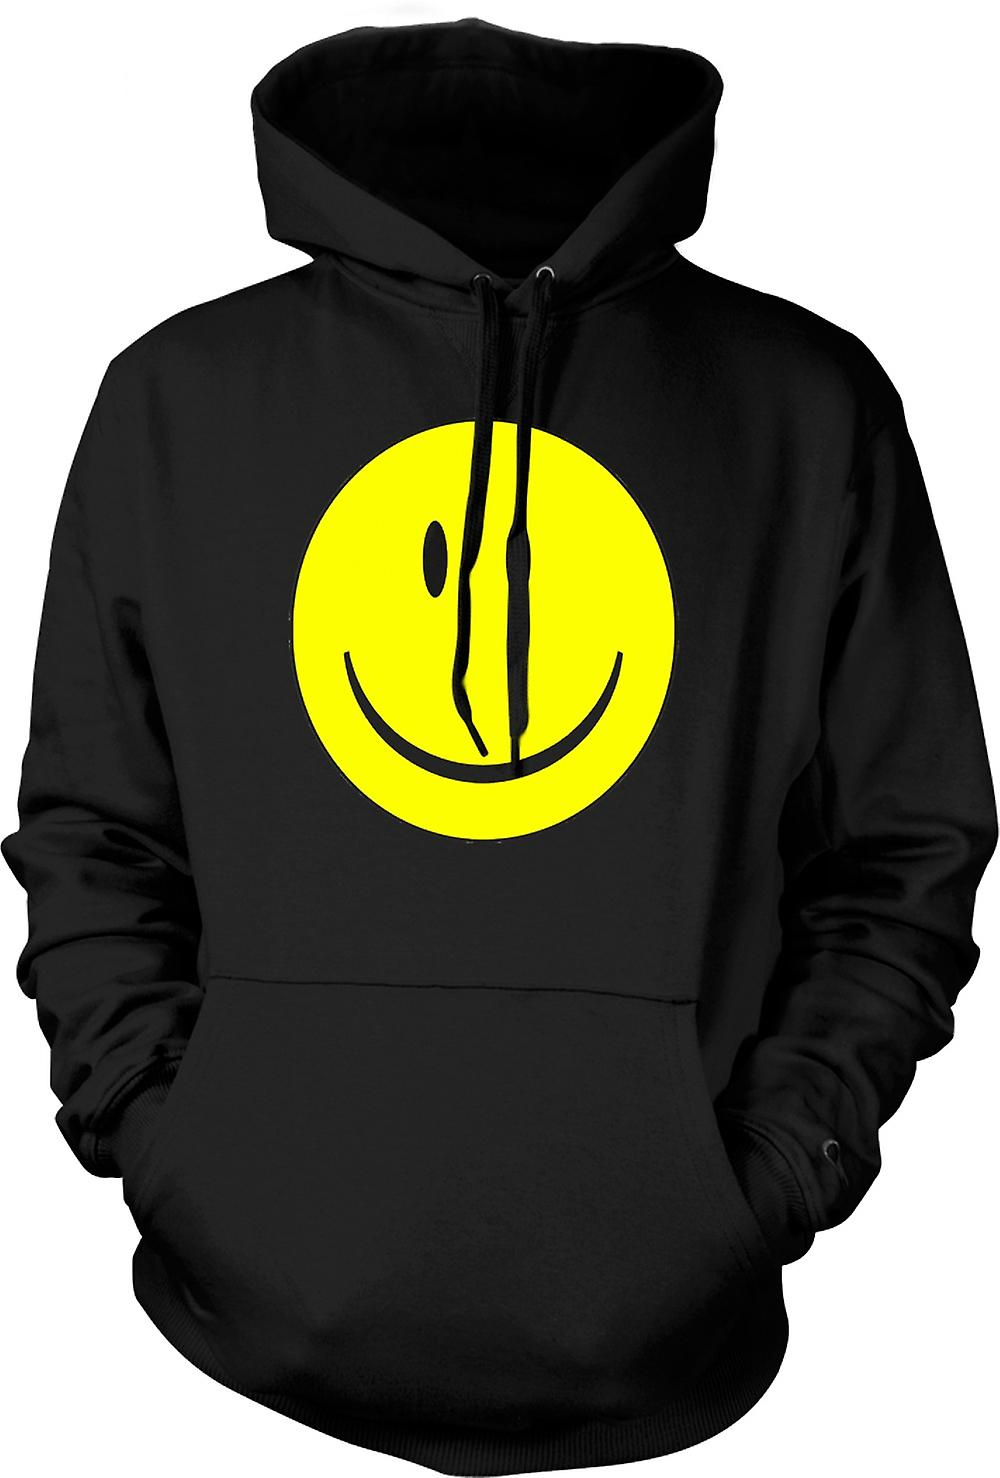 Mens Hoodie - miley cara - Acid House